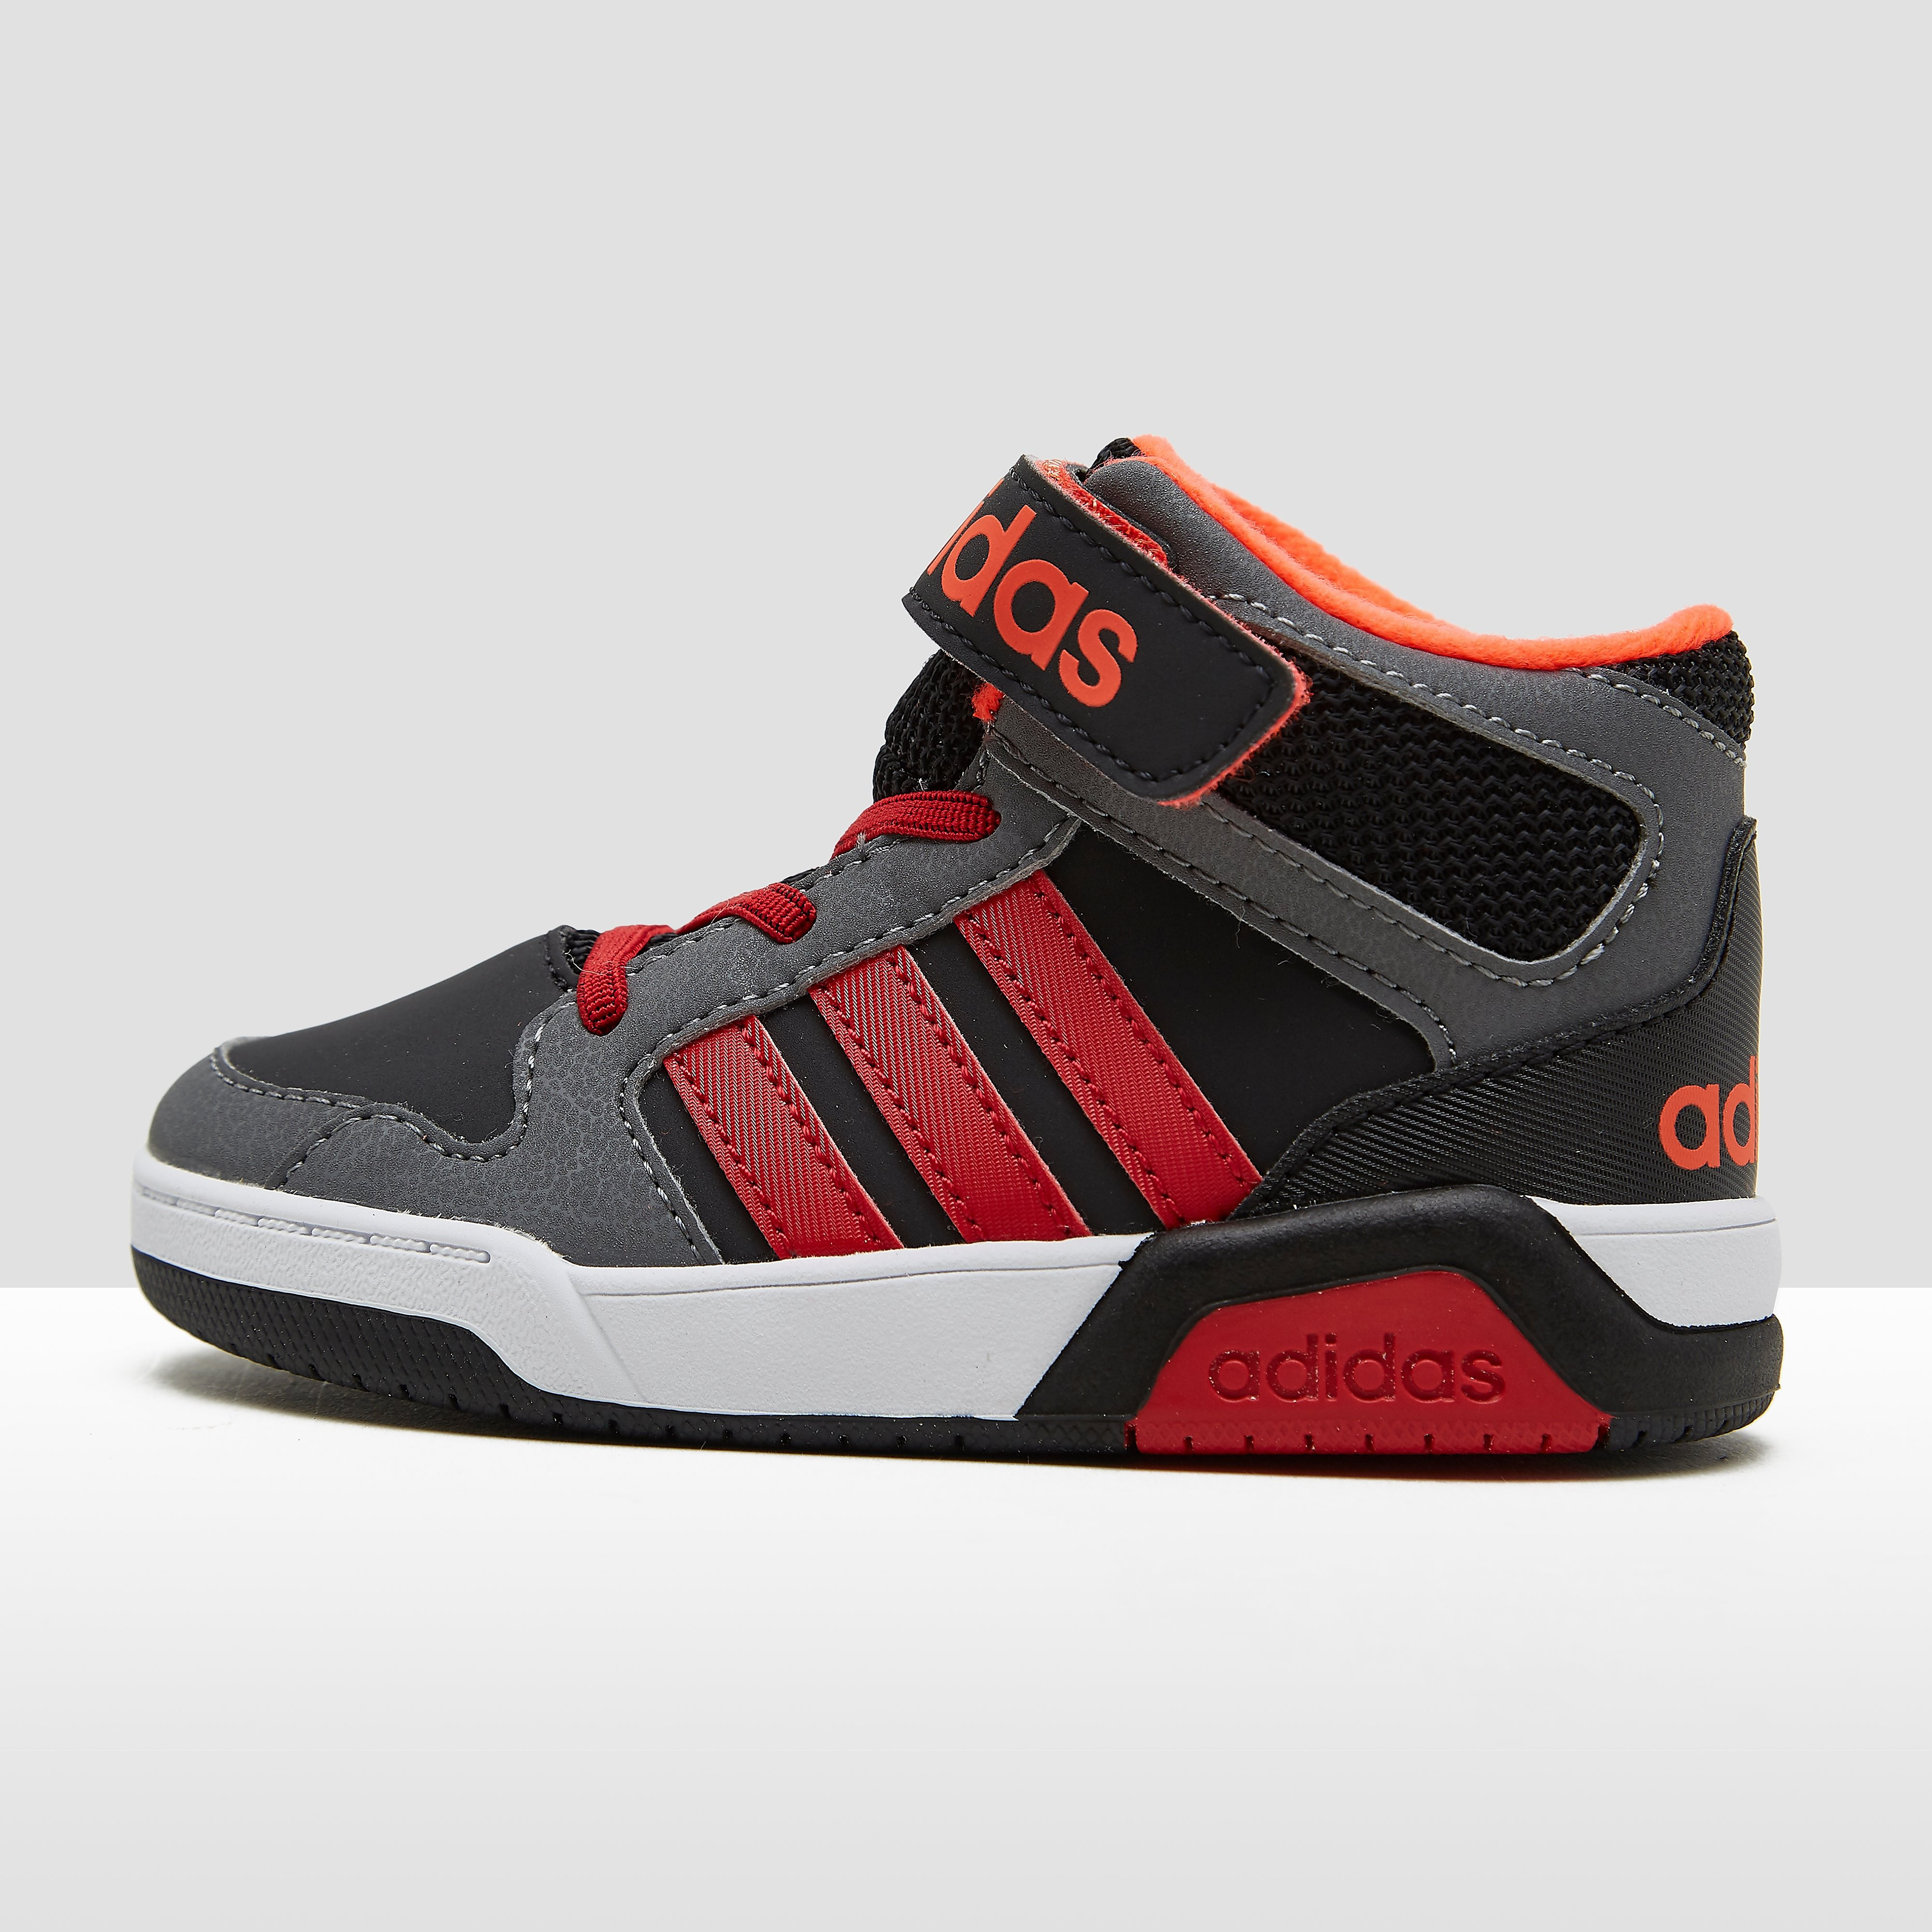 ADIDAS BB9TIS MID SNEAKERS ZWART/ROOD BABY